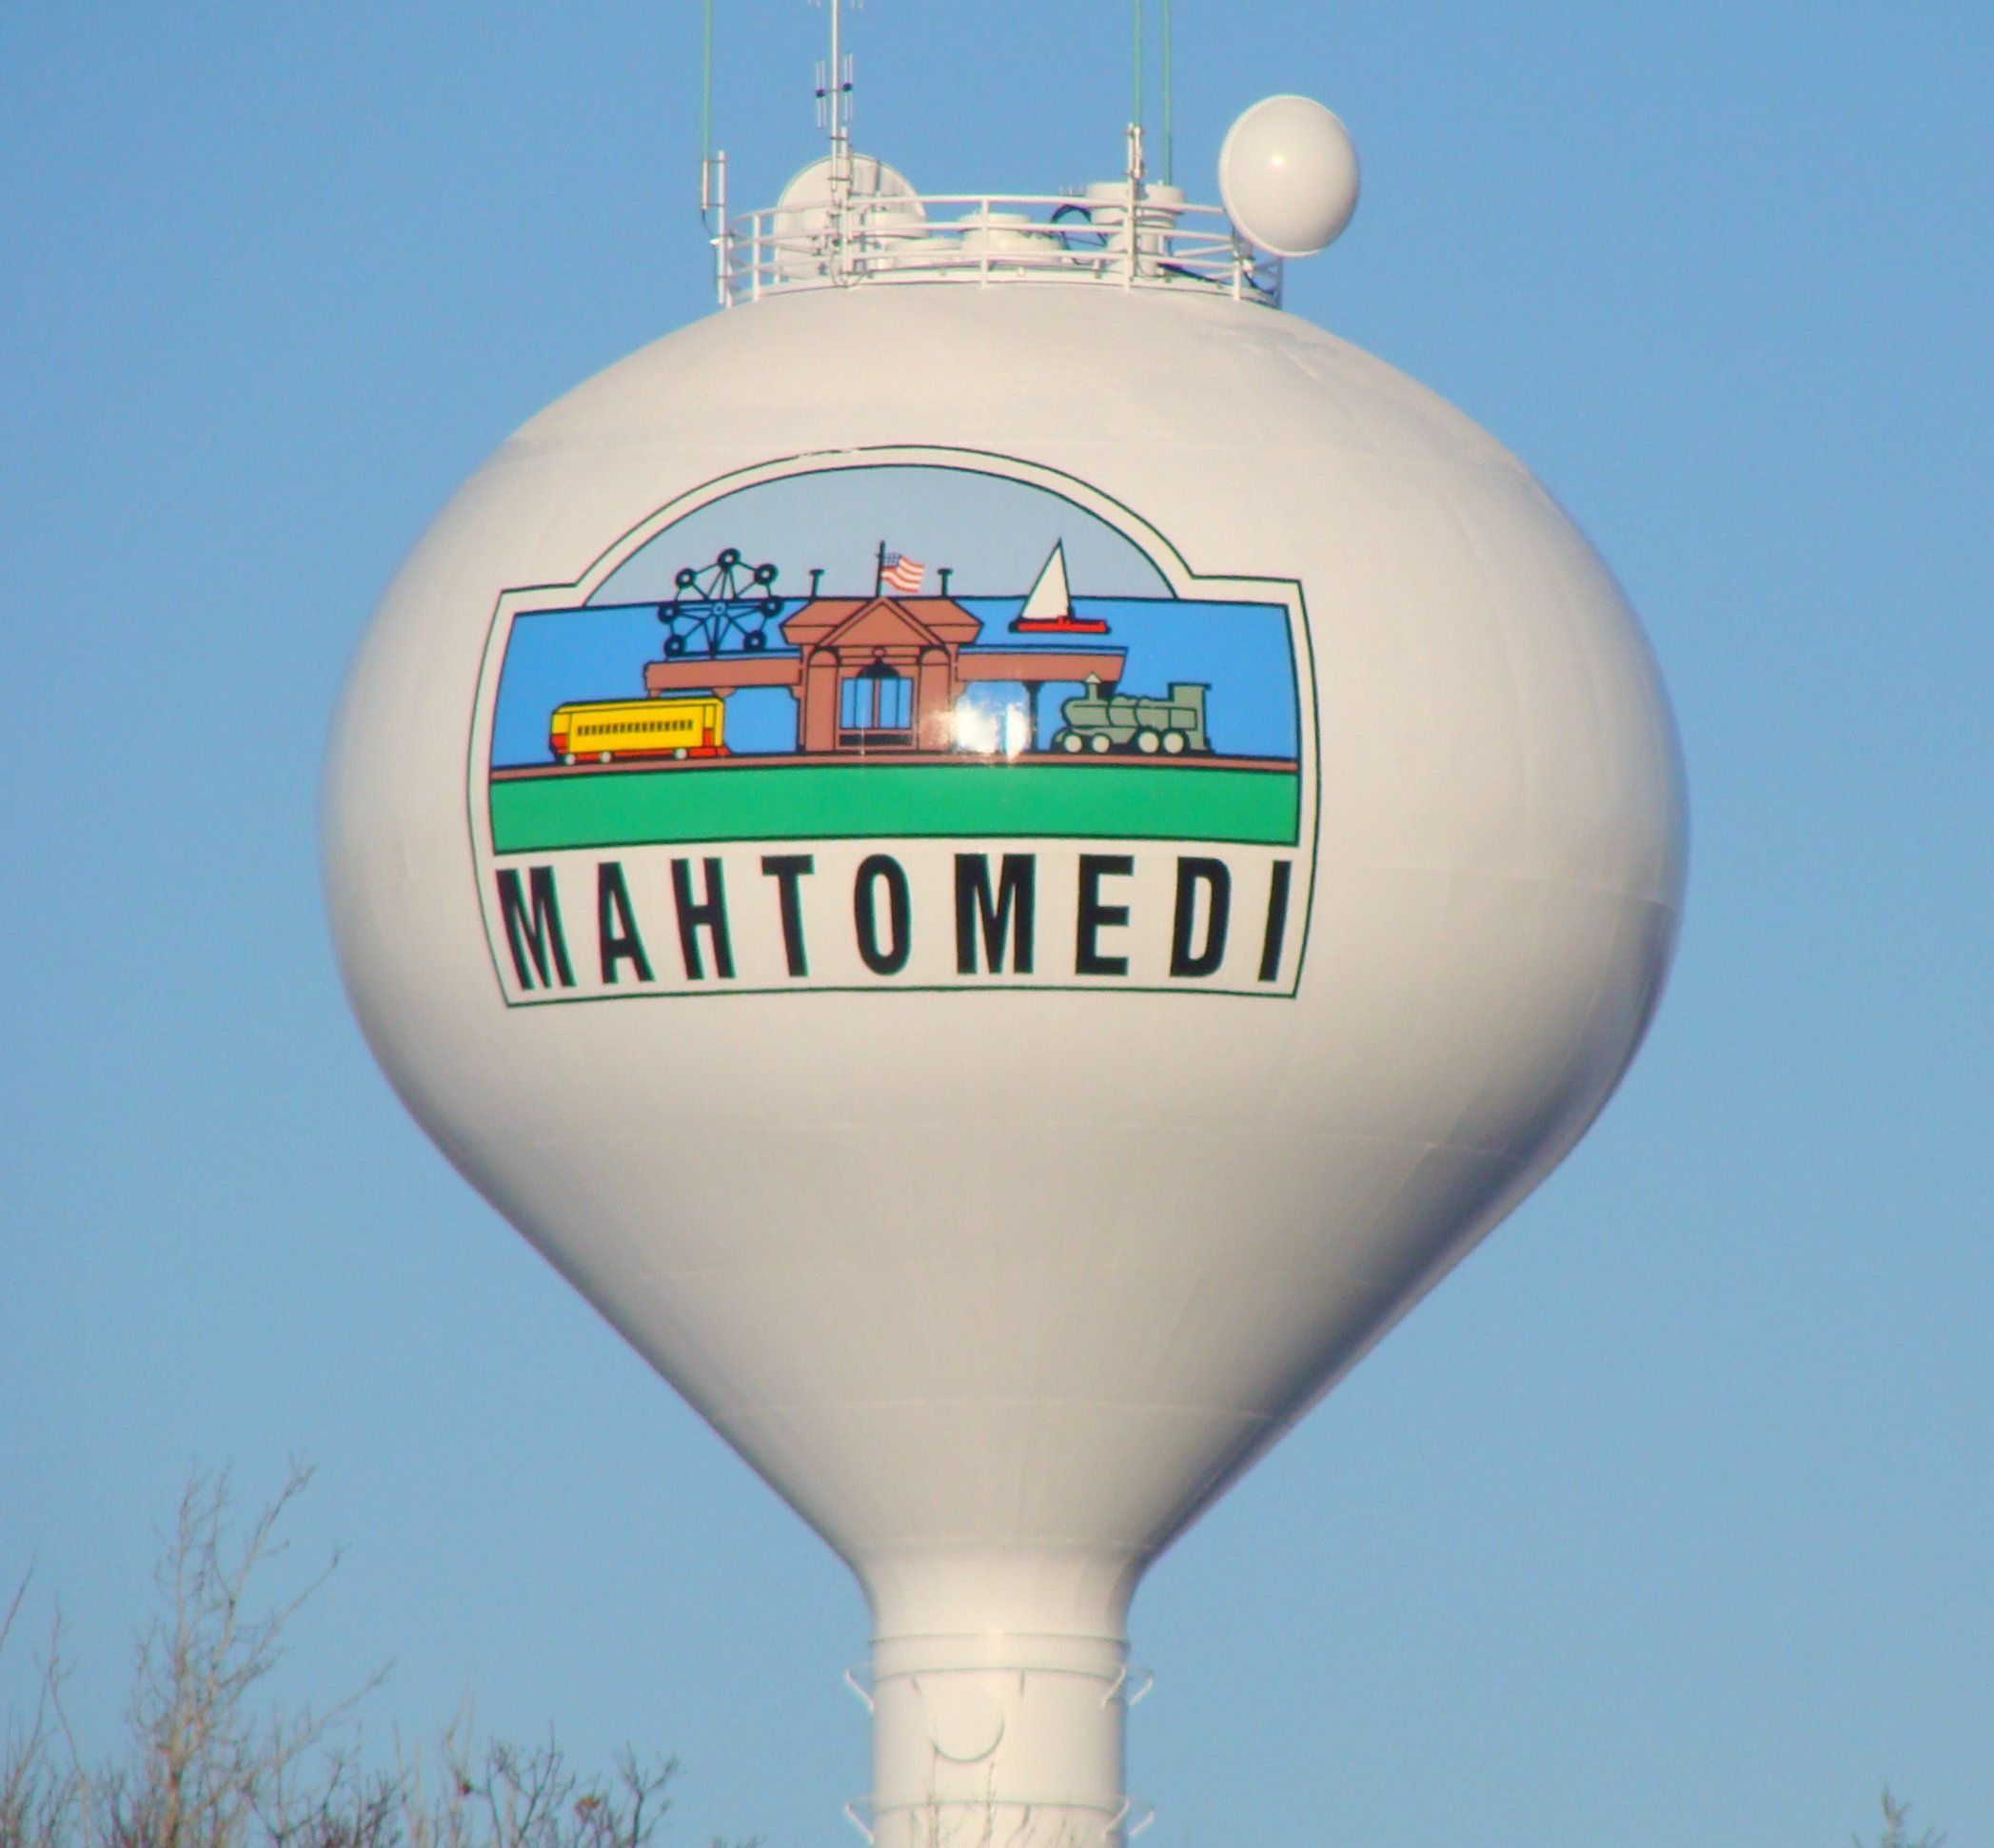 City of Mahtomedi Minnesota